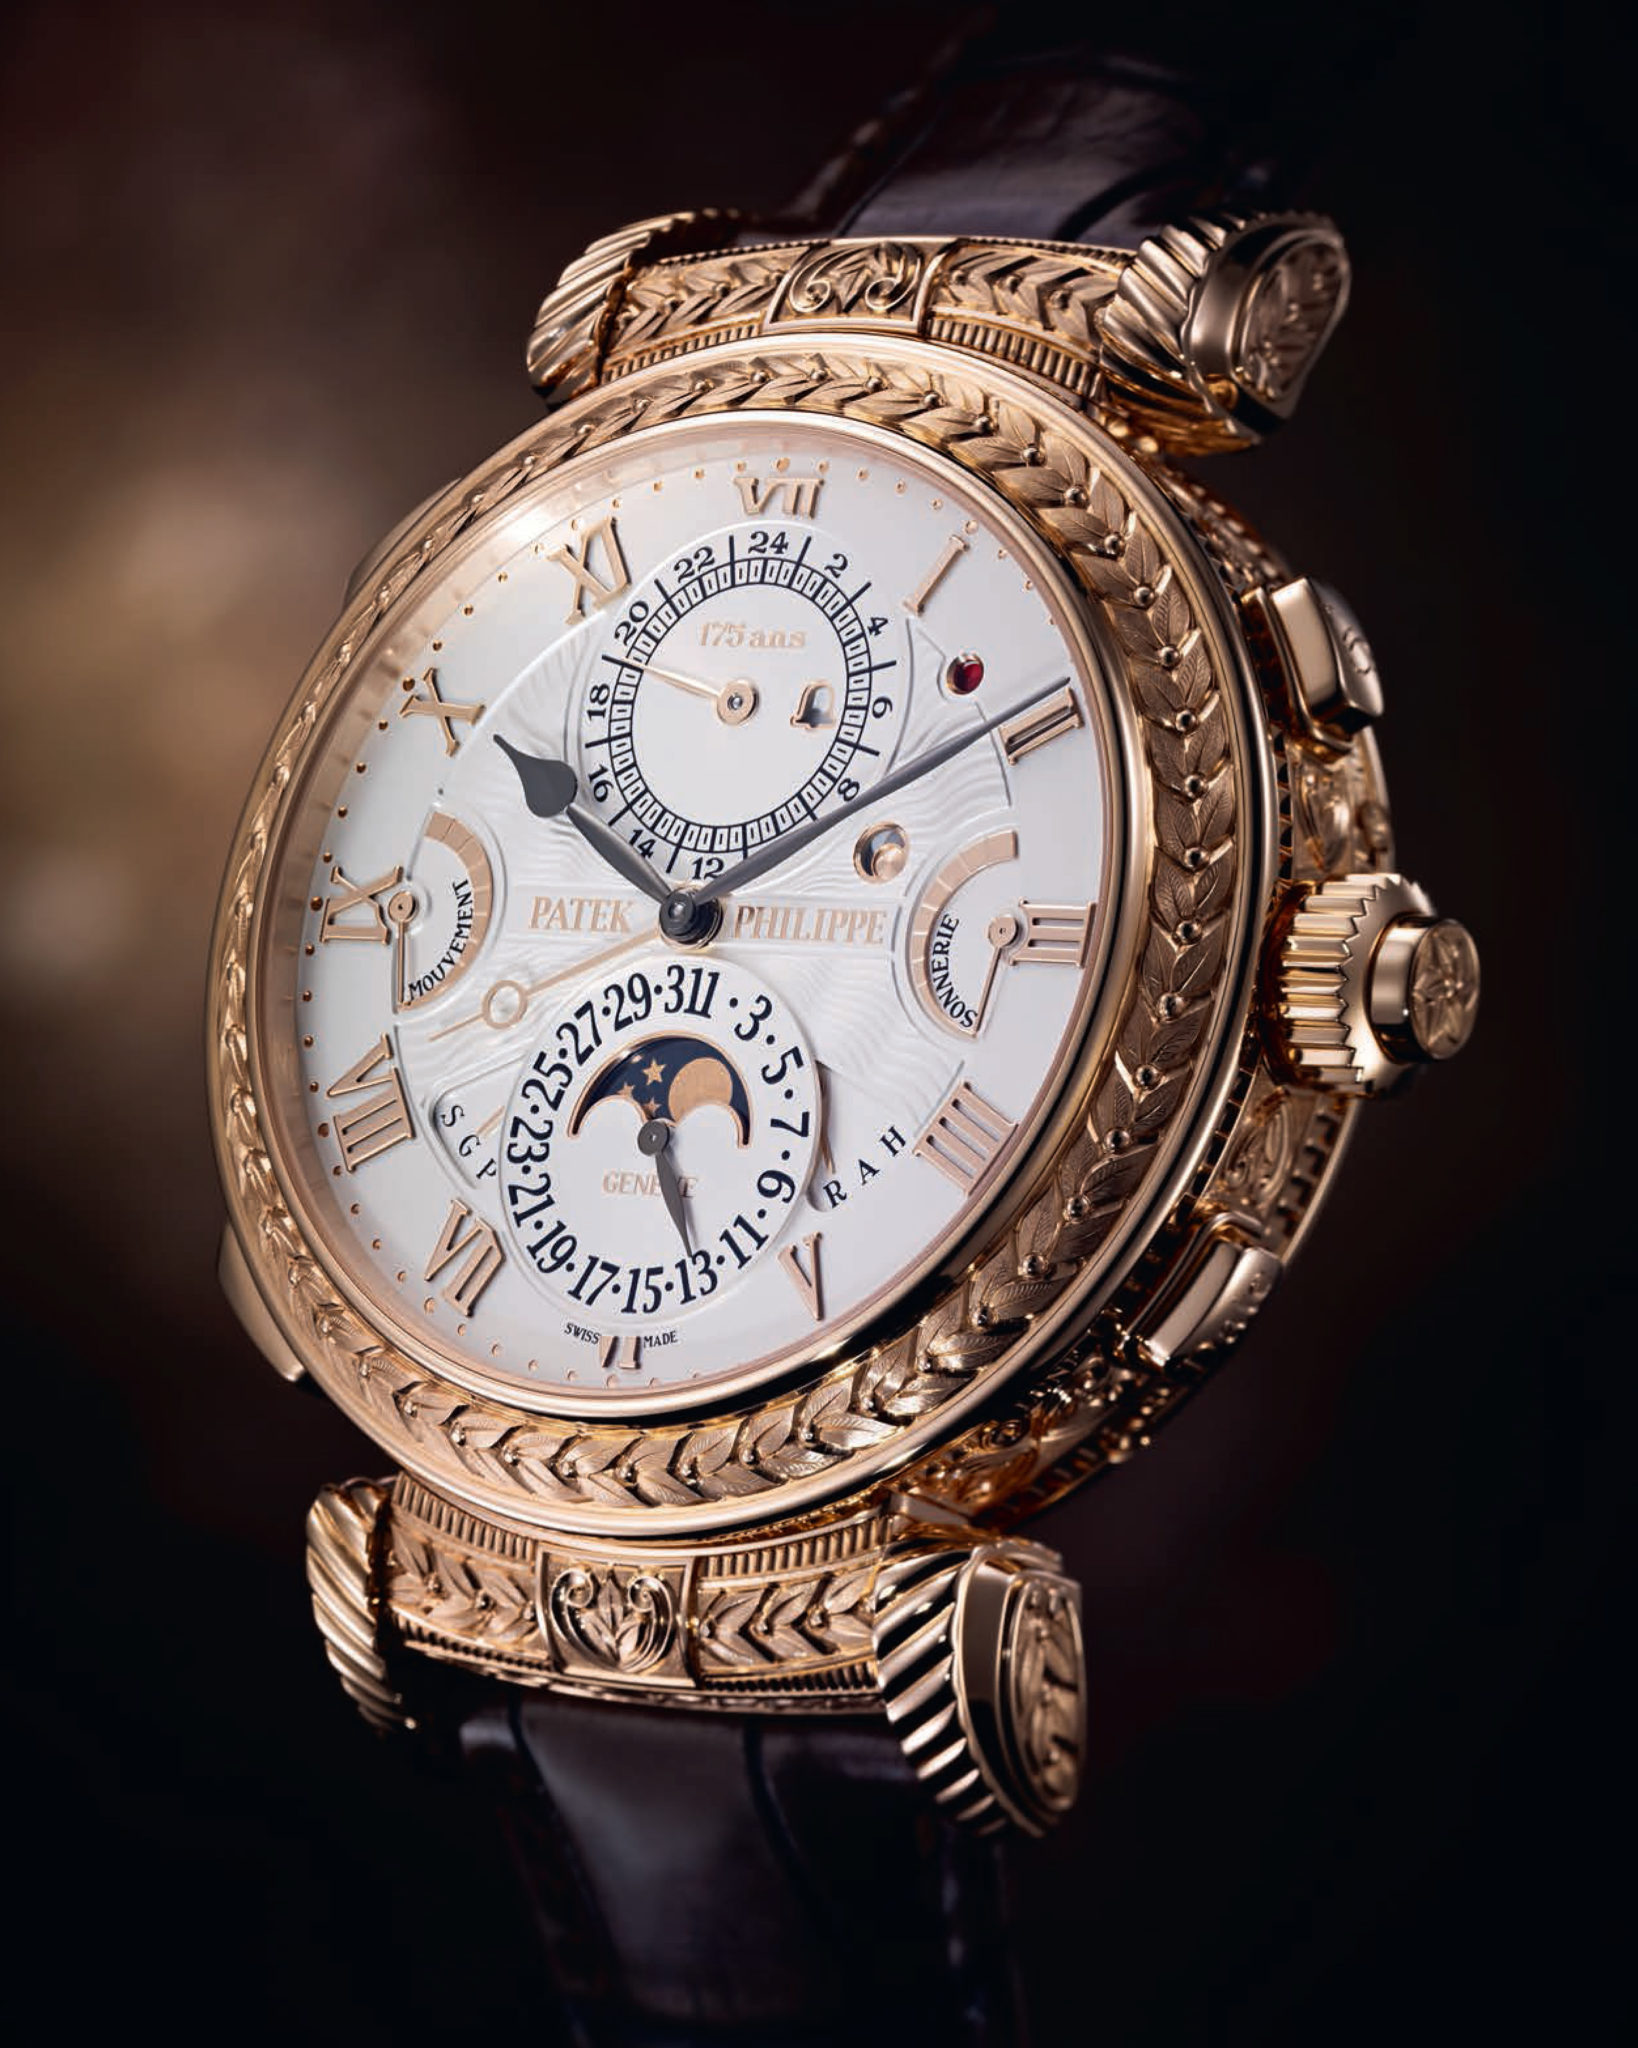 10 Most Expensive Patek Philippe Watches in the world in